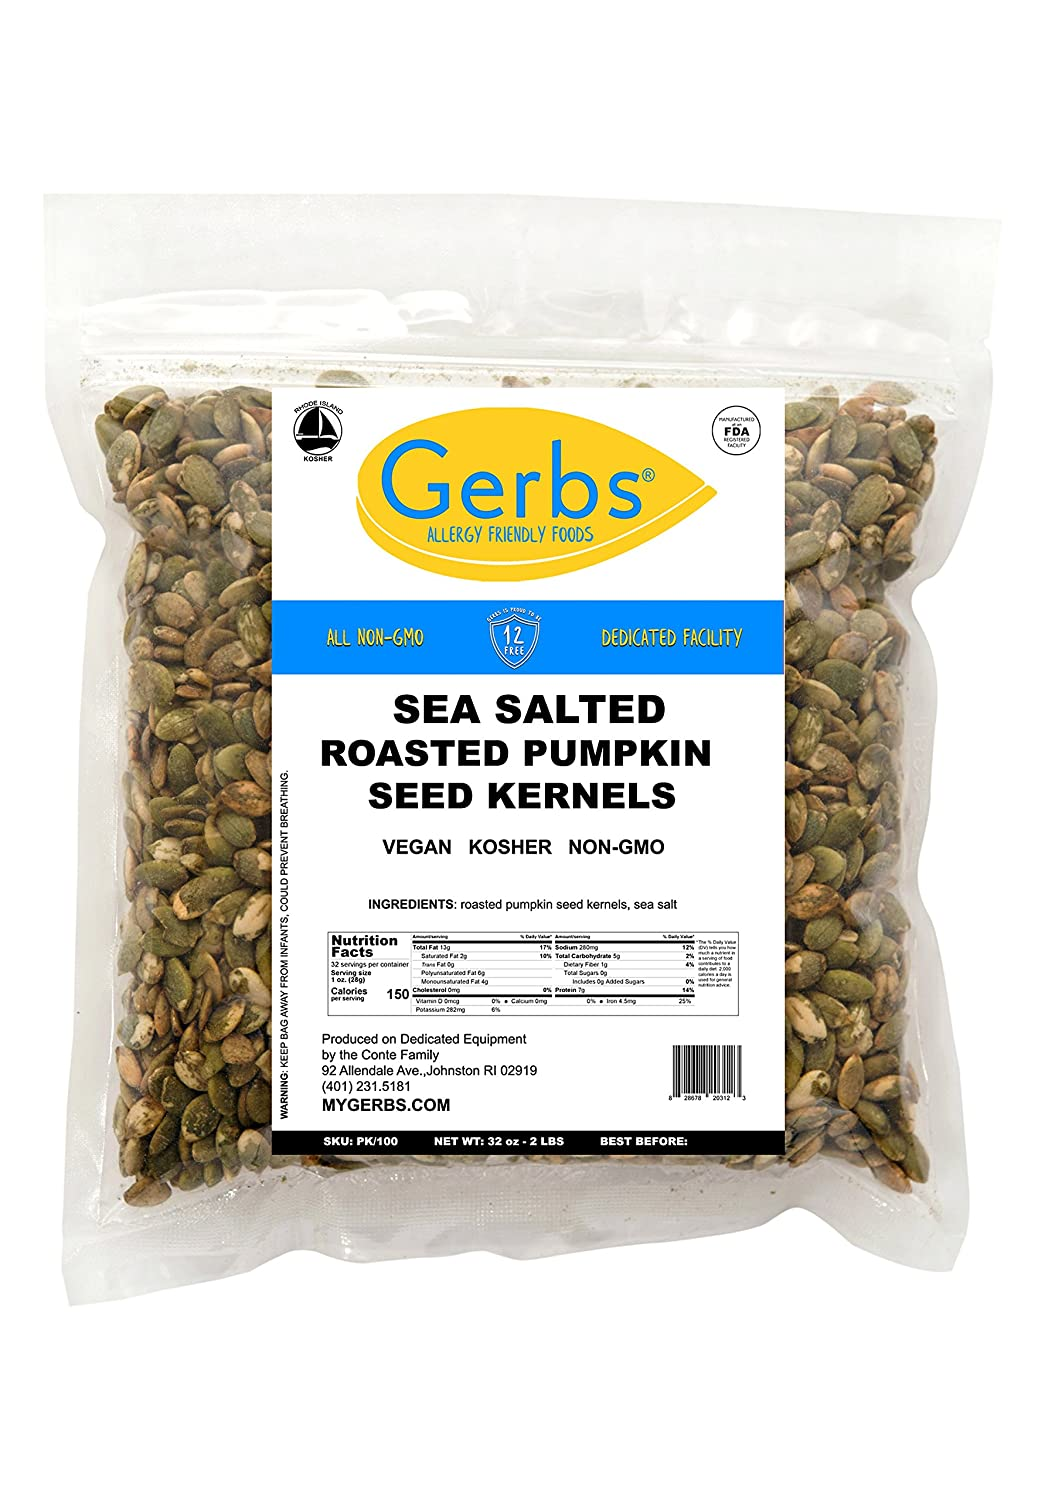 Sea Salted Pumpkin Seed Kernels, 2 LBS by Gerbs – Top 14 Food Allergy Free & NON GMO - Vegan & Kosher - Dry Roasted Premium Quality Seeds